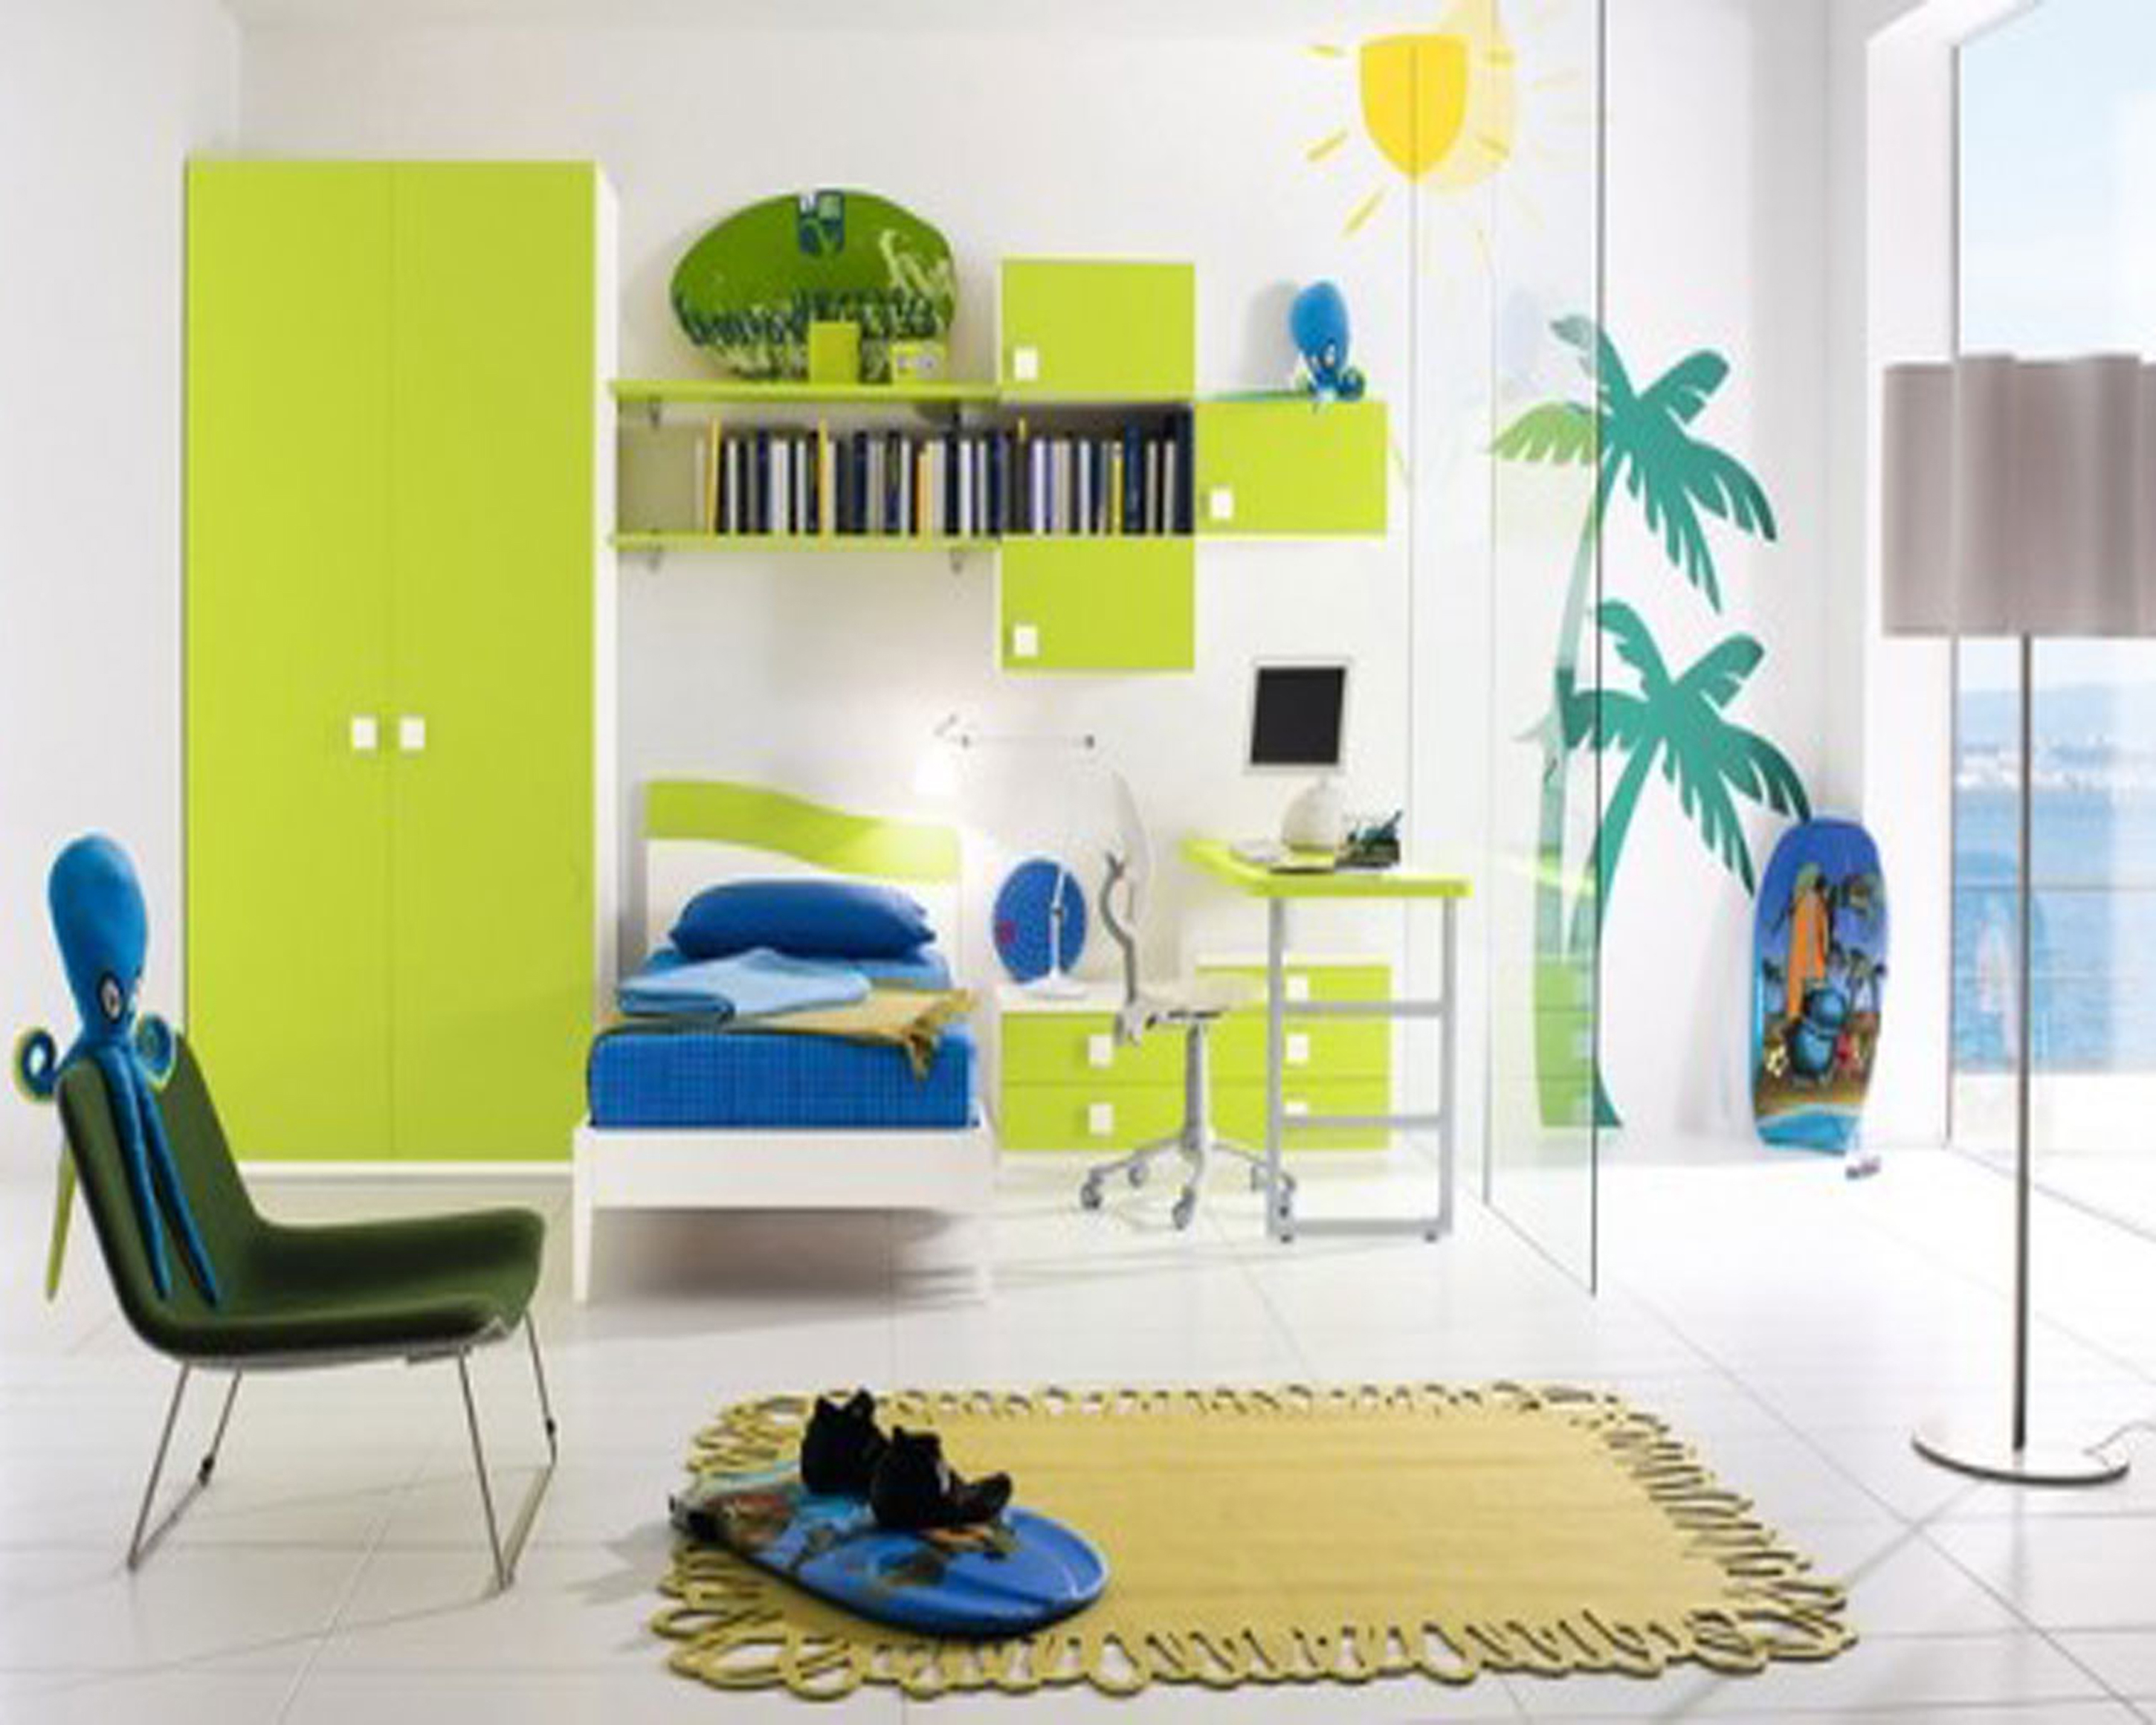 furniture accessories childrens spaces ideas for rooms bedroom big girl with small bunk boys beds decor in kids room little